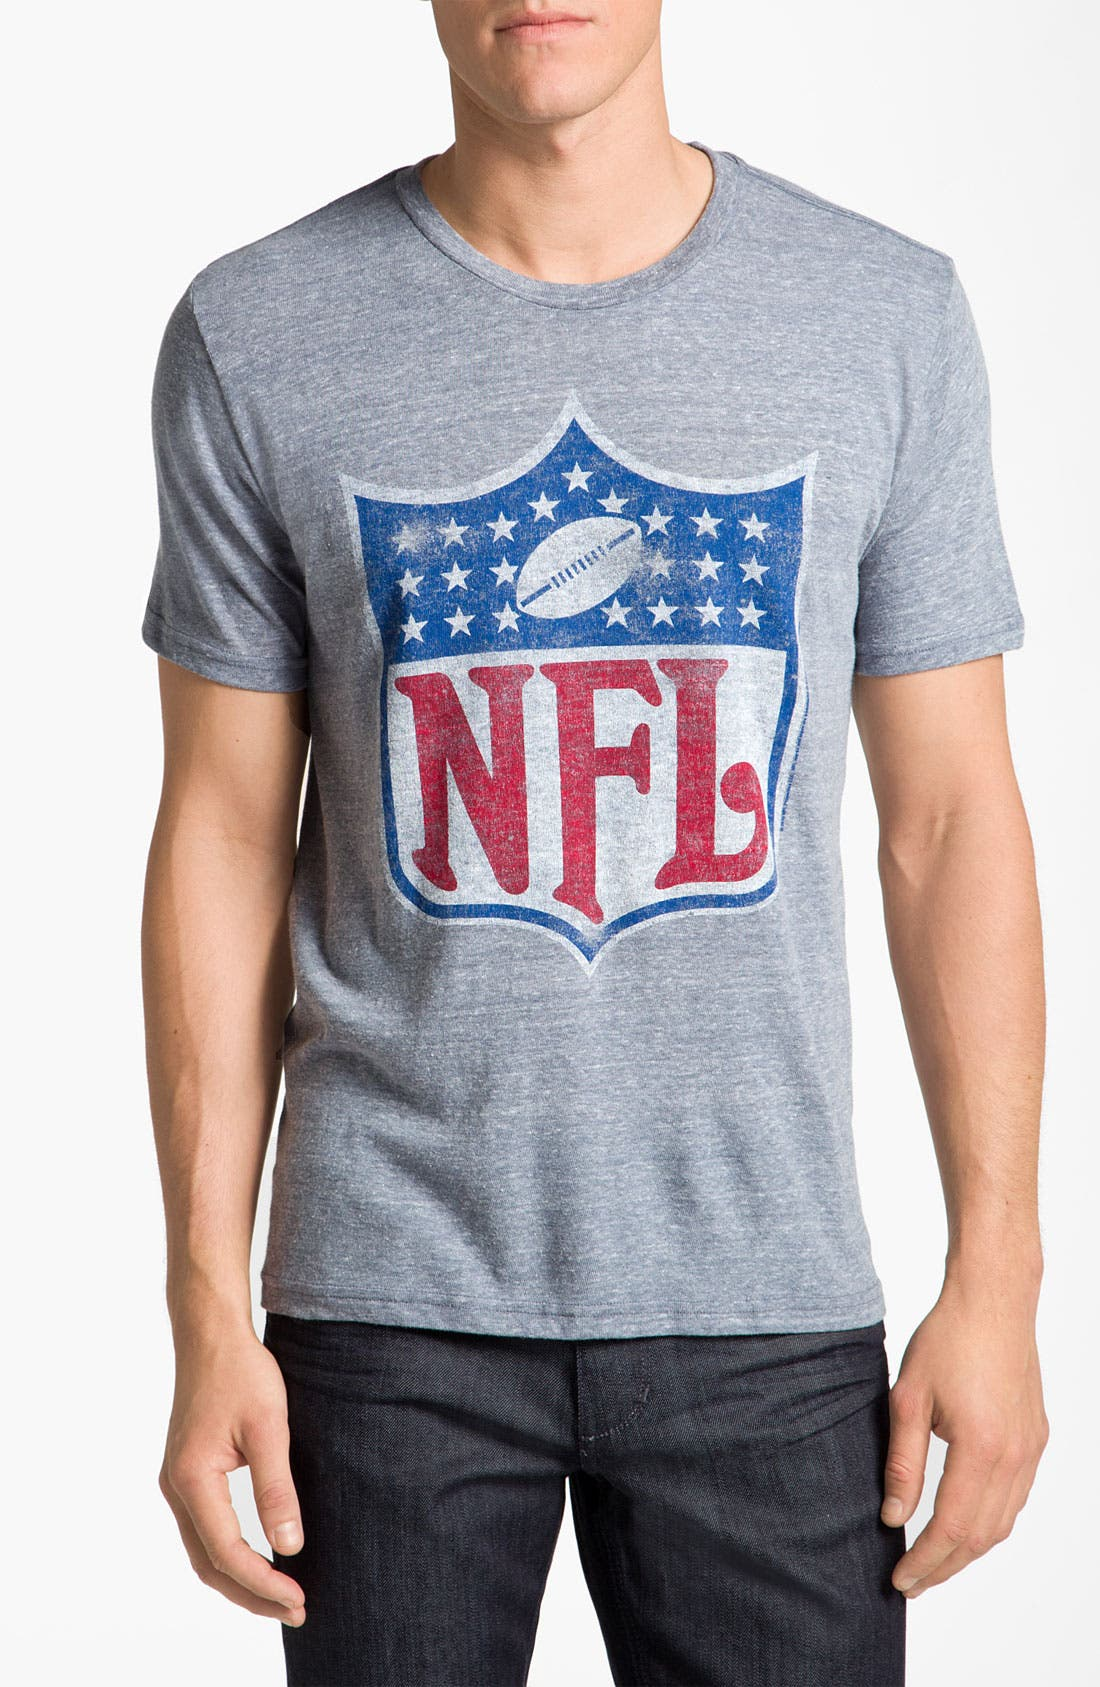 Alternate Image 1 Selected - Junk Food NFL Shield Graphic Crewneck T-Shirt